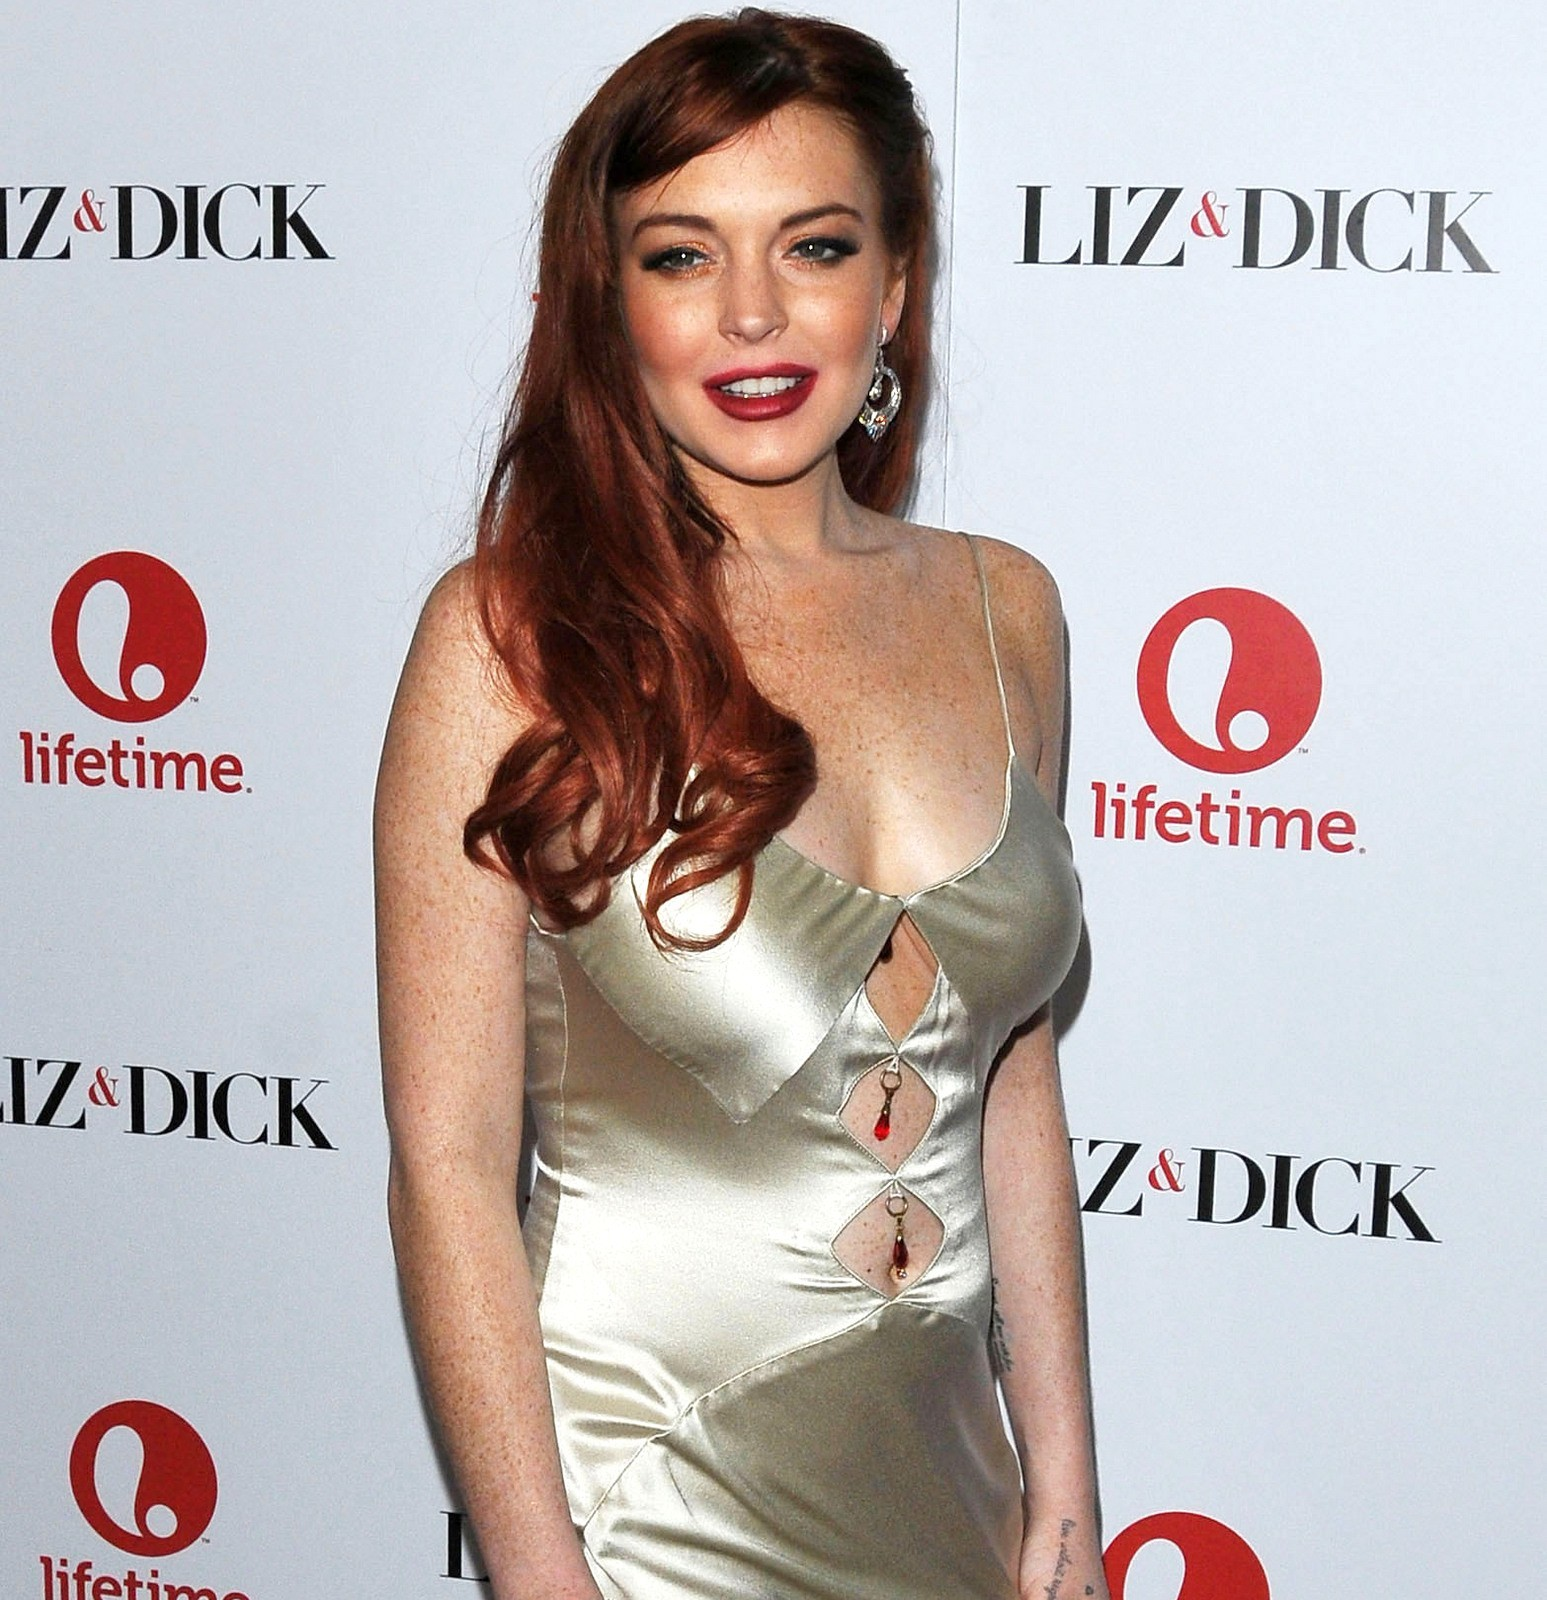 Lindsay Lohan red carpet Liz & Dick lipstick satin dress